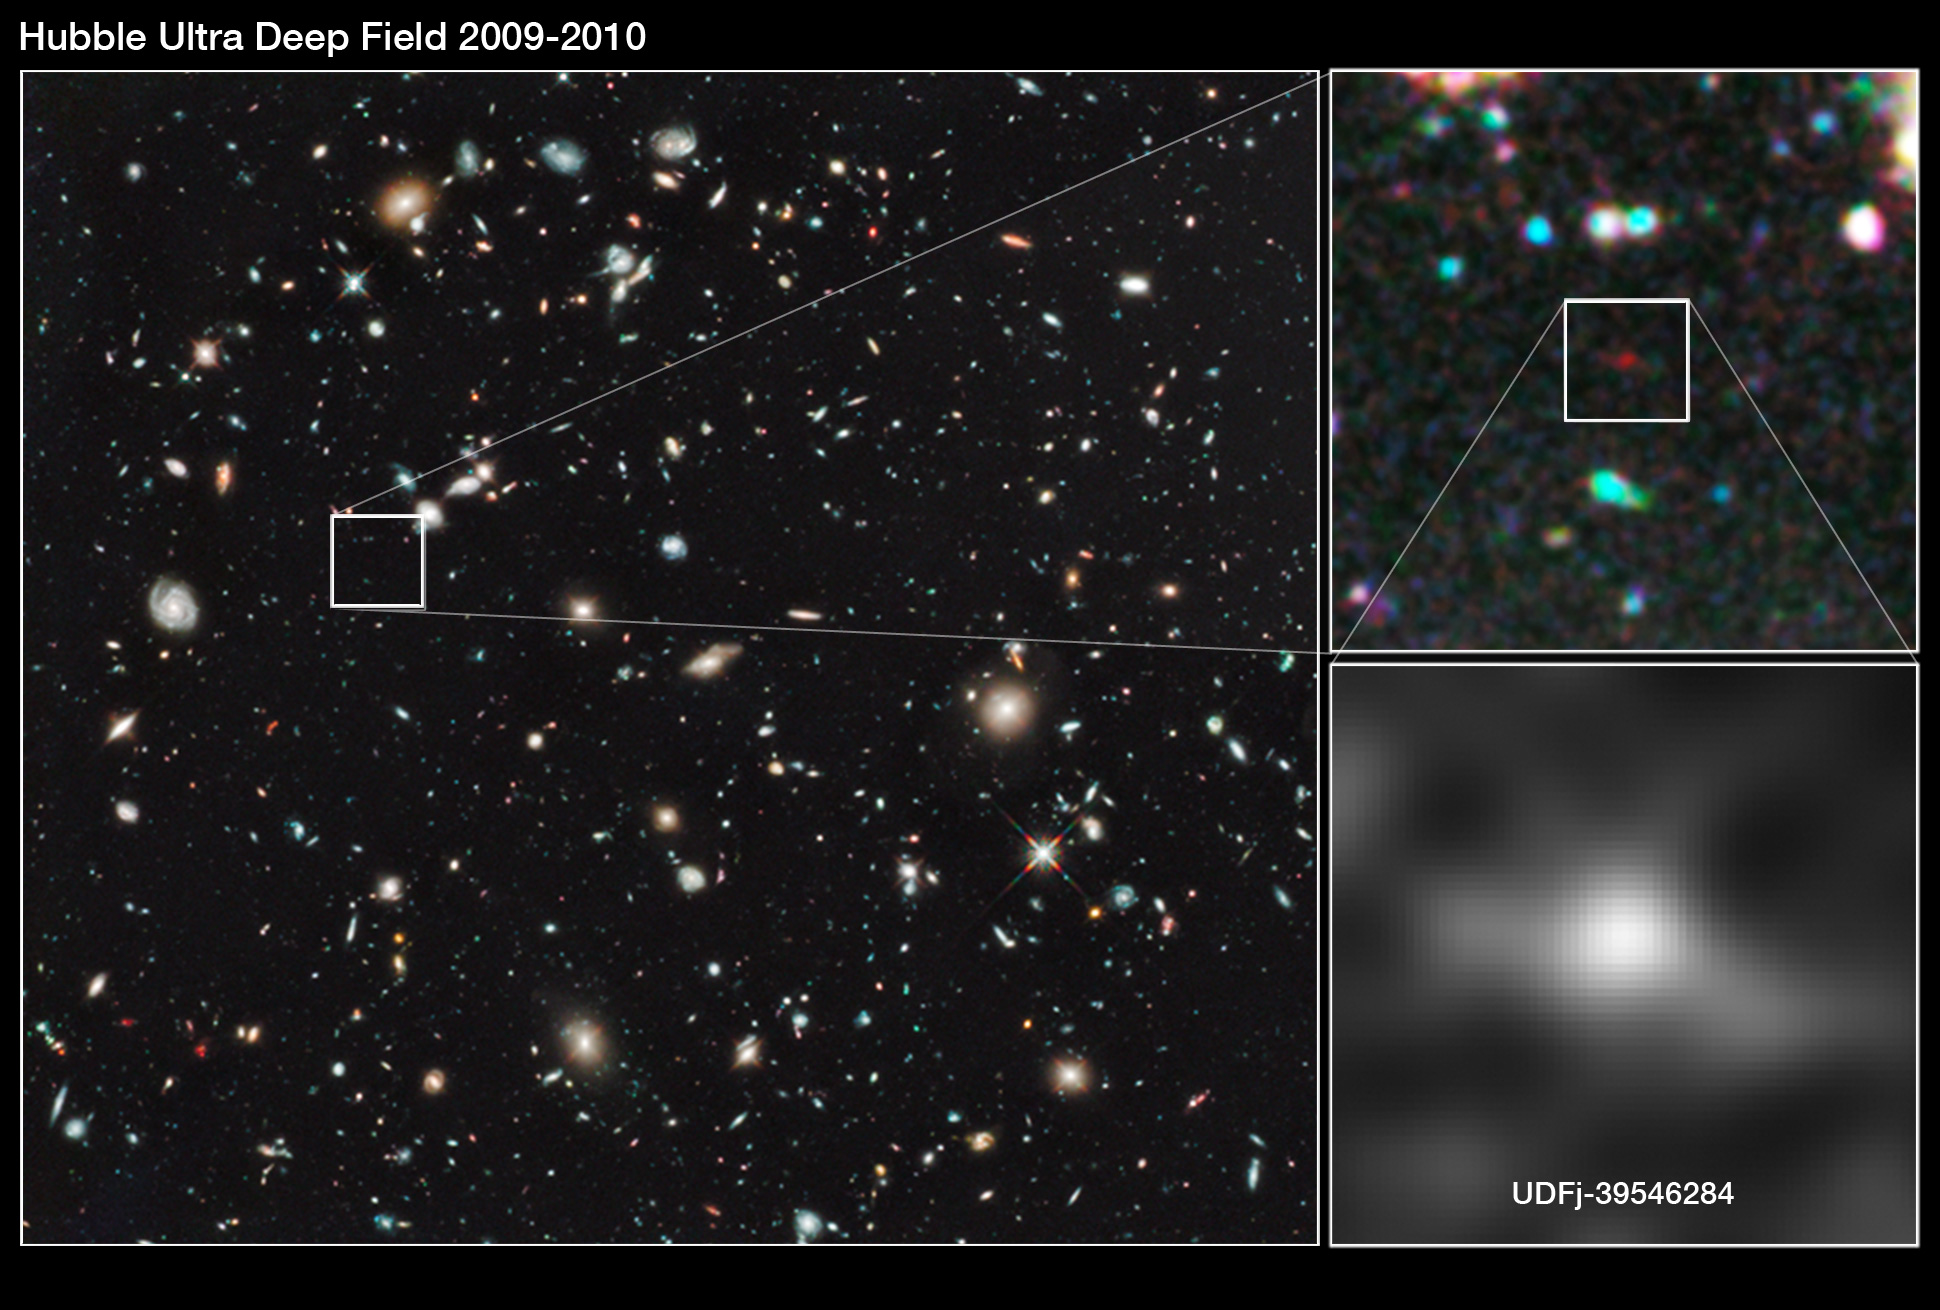 The Most Distant Galaxy in the Universe